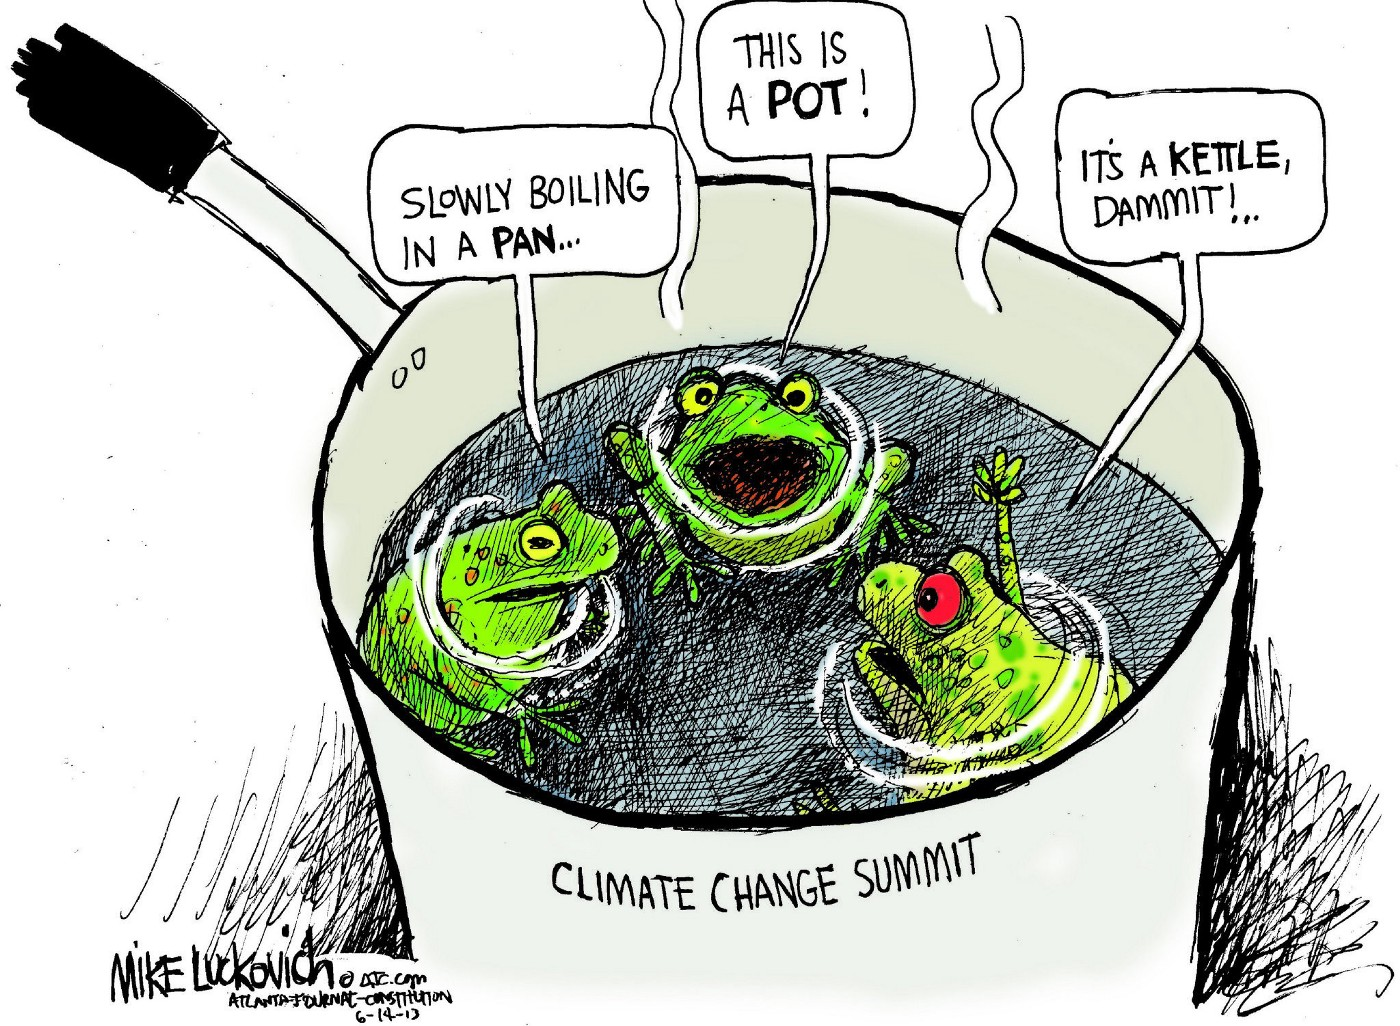 Three frogs in a pot debating terminology. One says they're in a pan, the other says its a pot, the third says its a kettle. The pot is labeled 'climate change summit.'